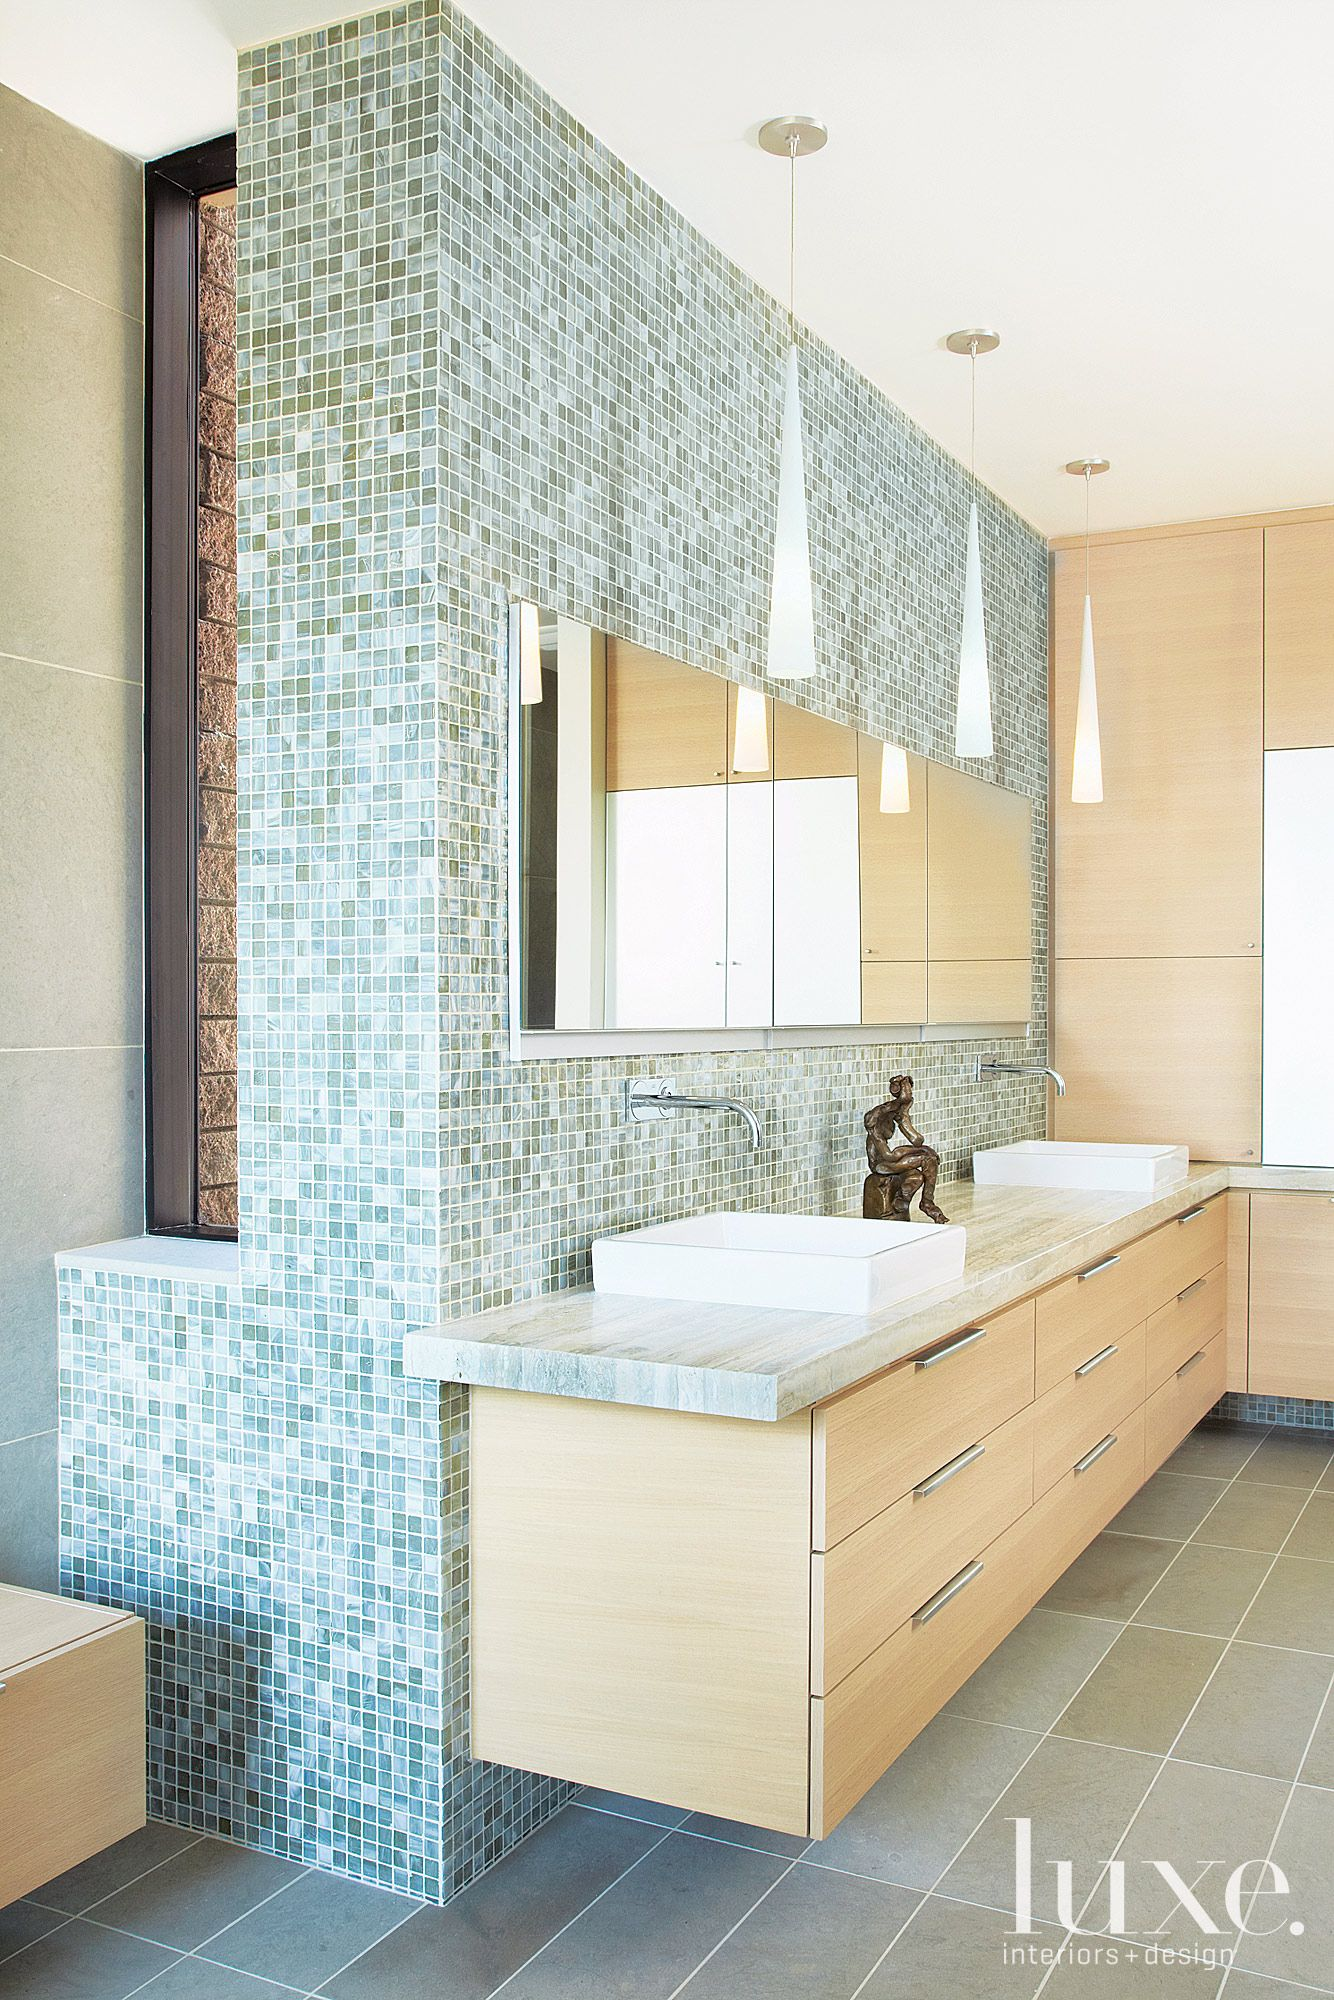 Vintage Glass Mosaics from WZ - Luxe Interiors + Design | Beautiful ...